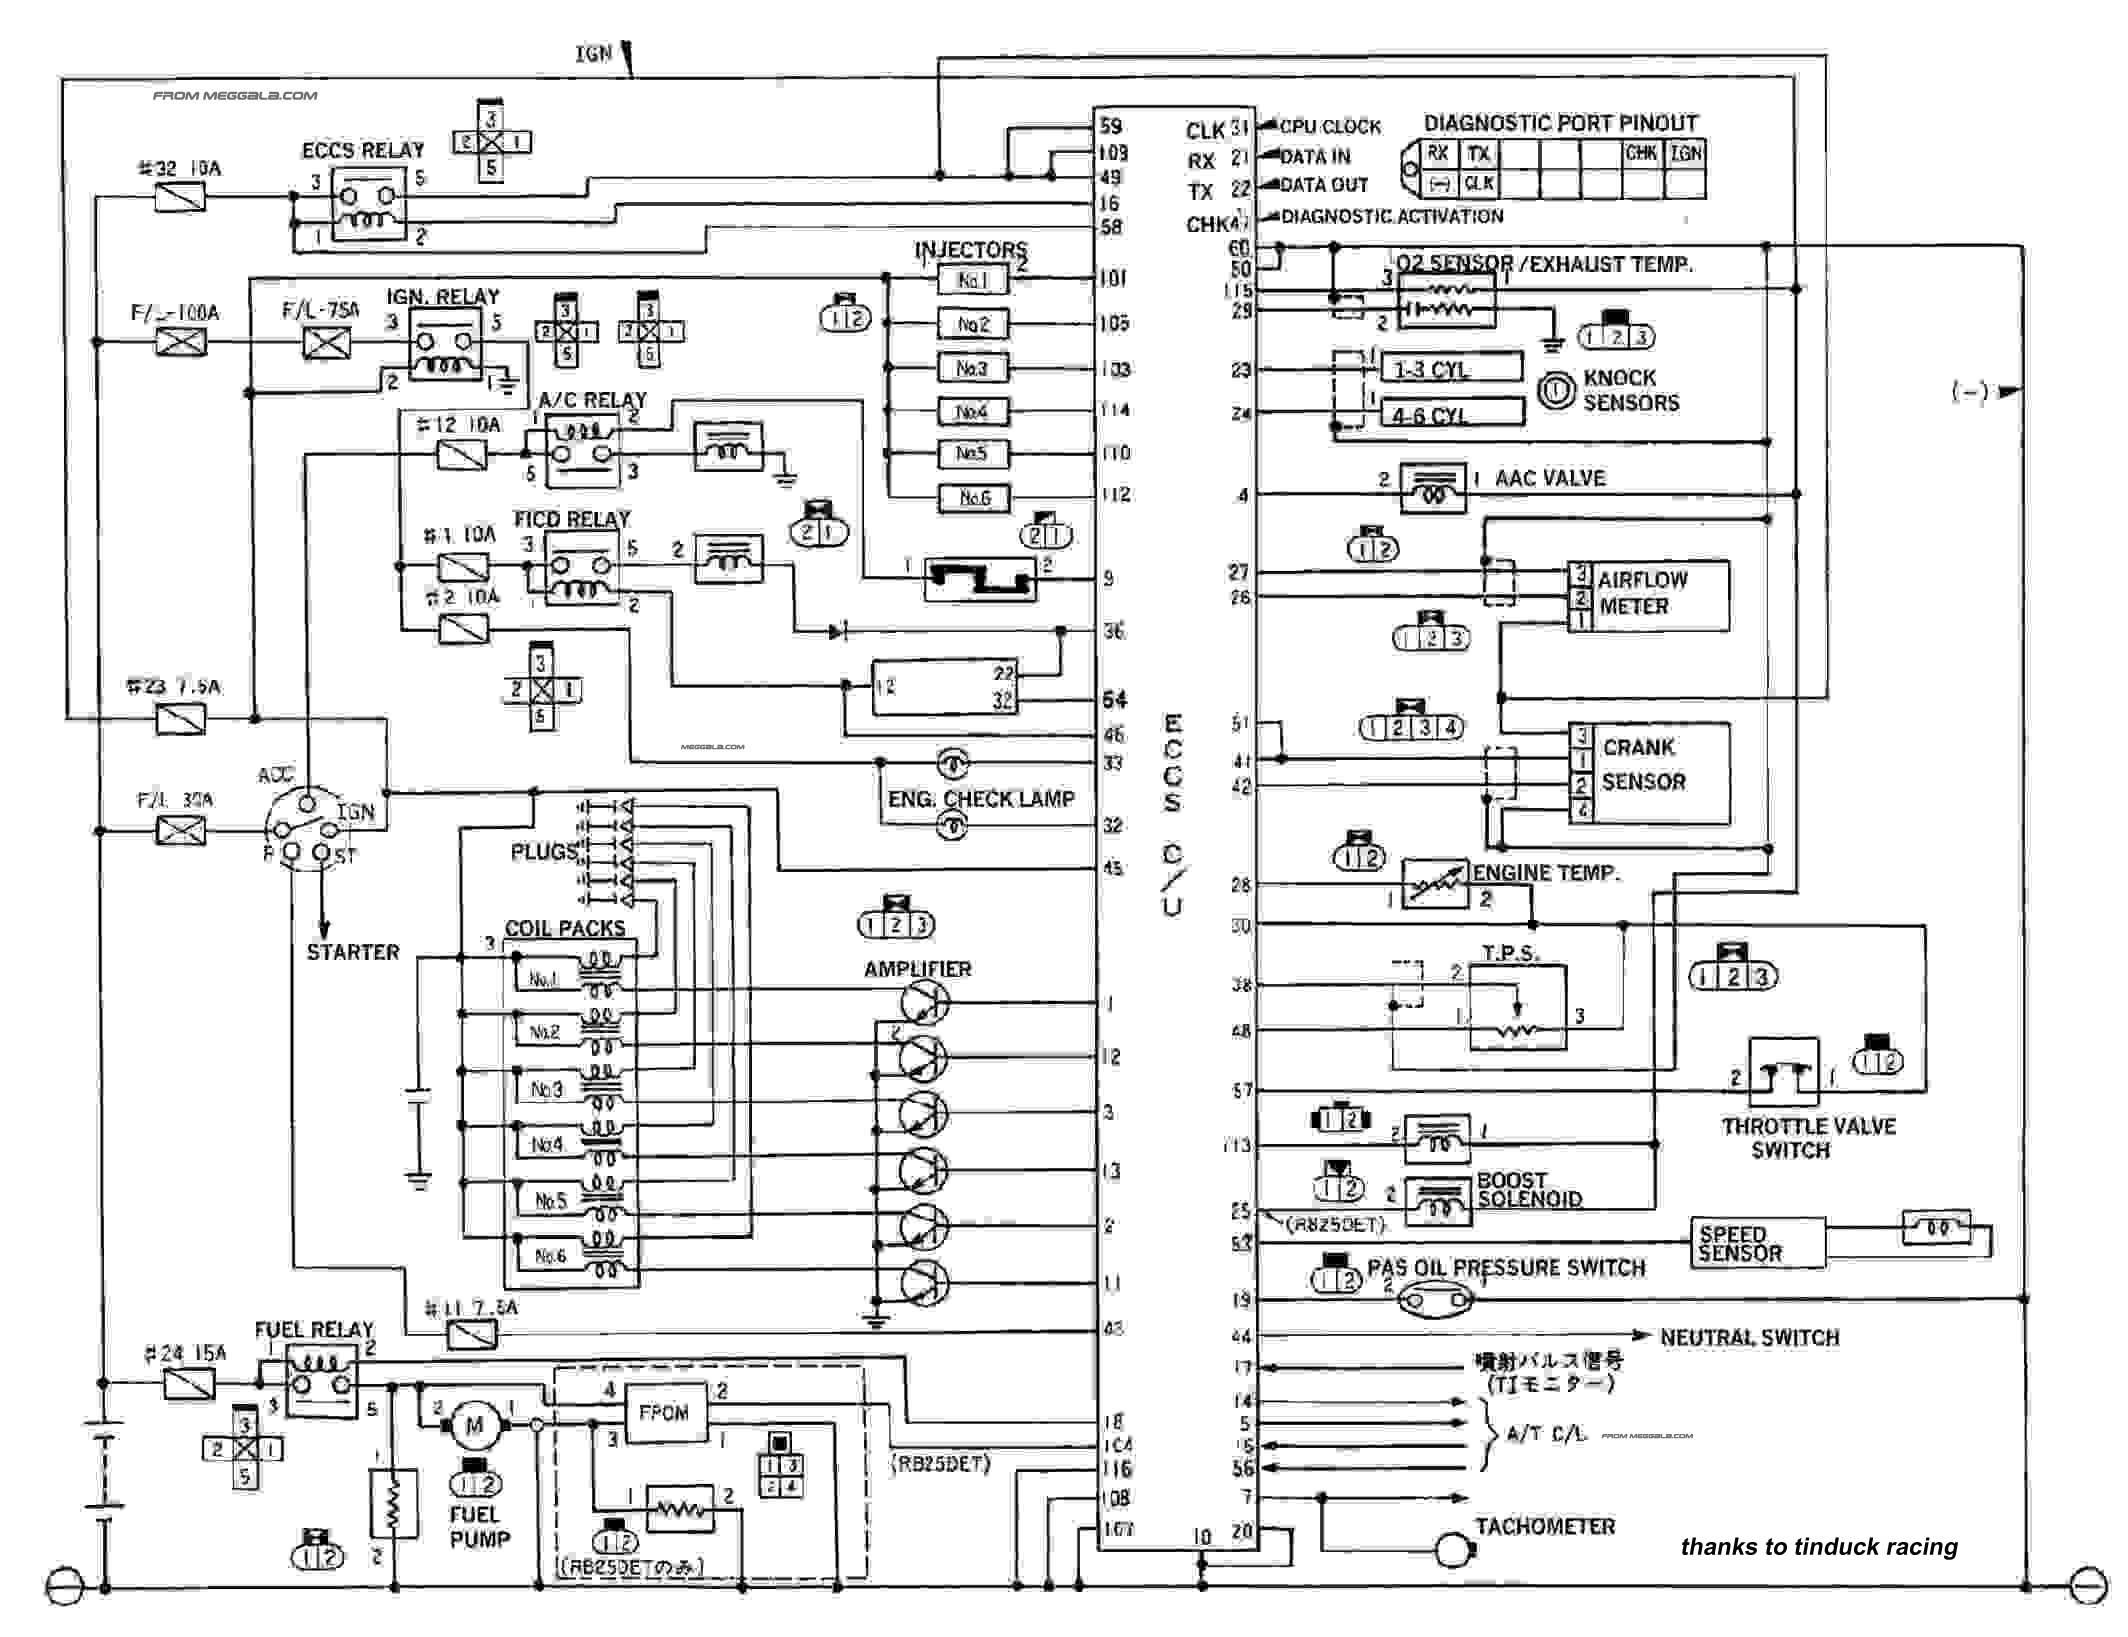 Nissan Ga15 Engine Wiring Diagram 10 Easy Card Tricks Electrical Diagram Electrical Wiring Diagram